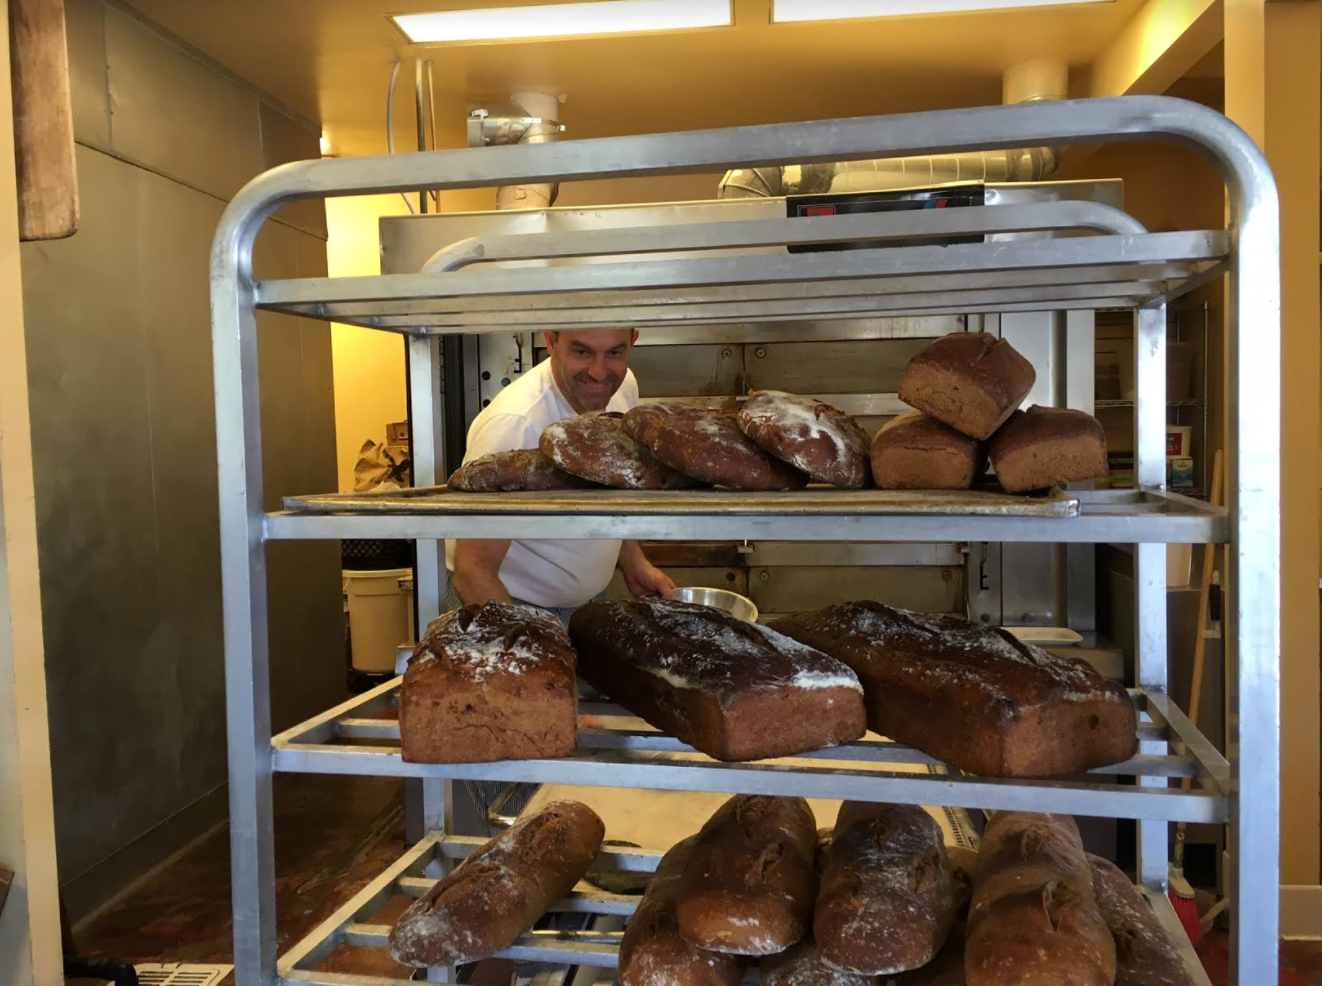 Joseph Abrakjian at Seed Bakery removing those loaves fresh from the bread oven.